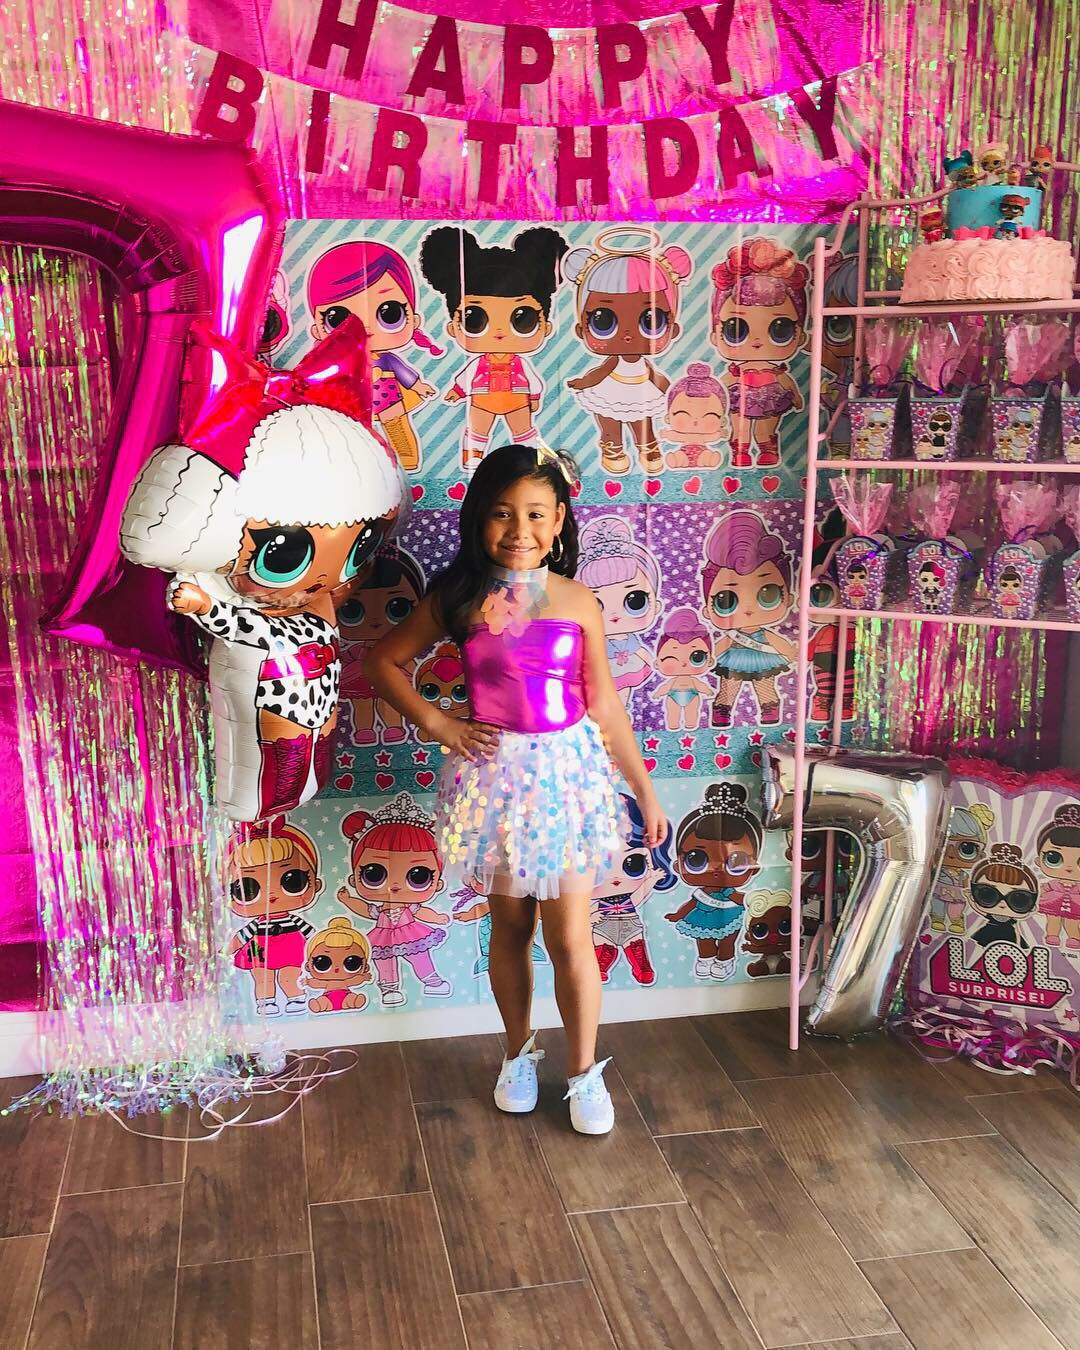 Banner 7th LOL Dolls Party Supplies Balloons Birthday For Girl Set Pink Decor Backdrop Decorations 7